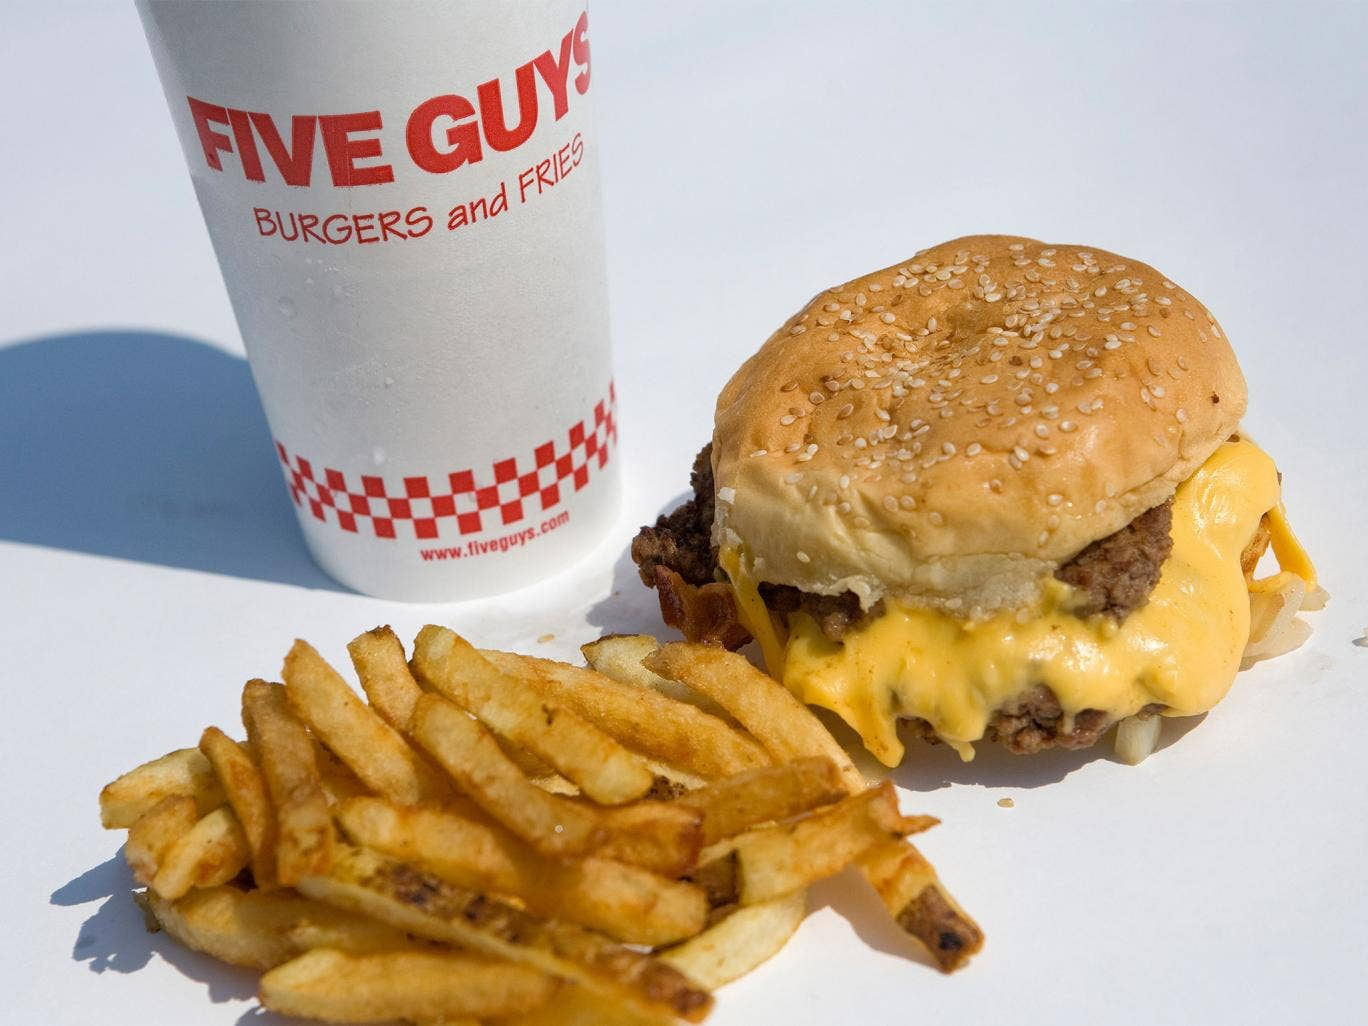 Five Guys are planning a British invasion